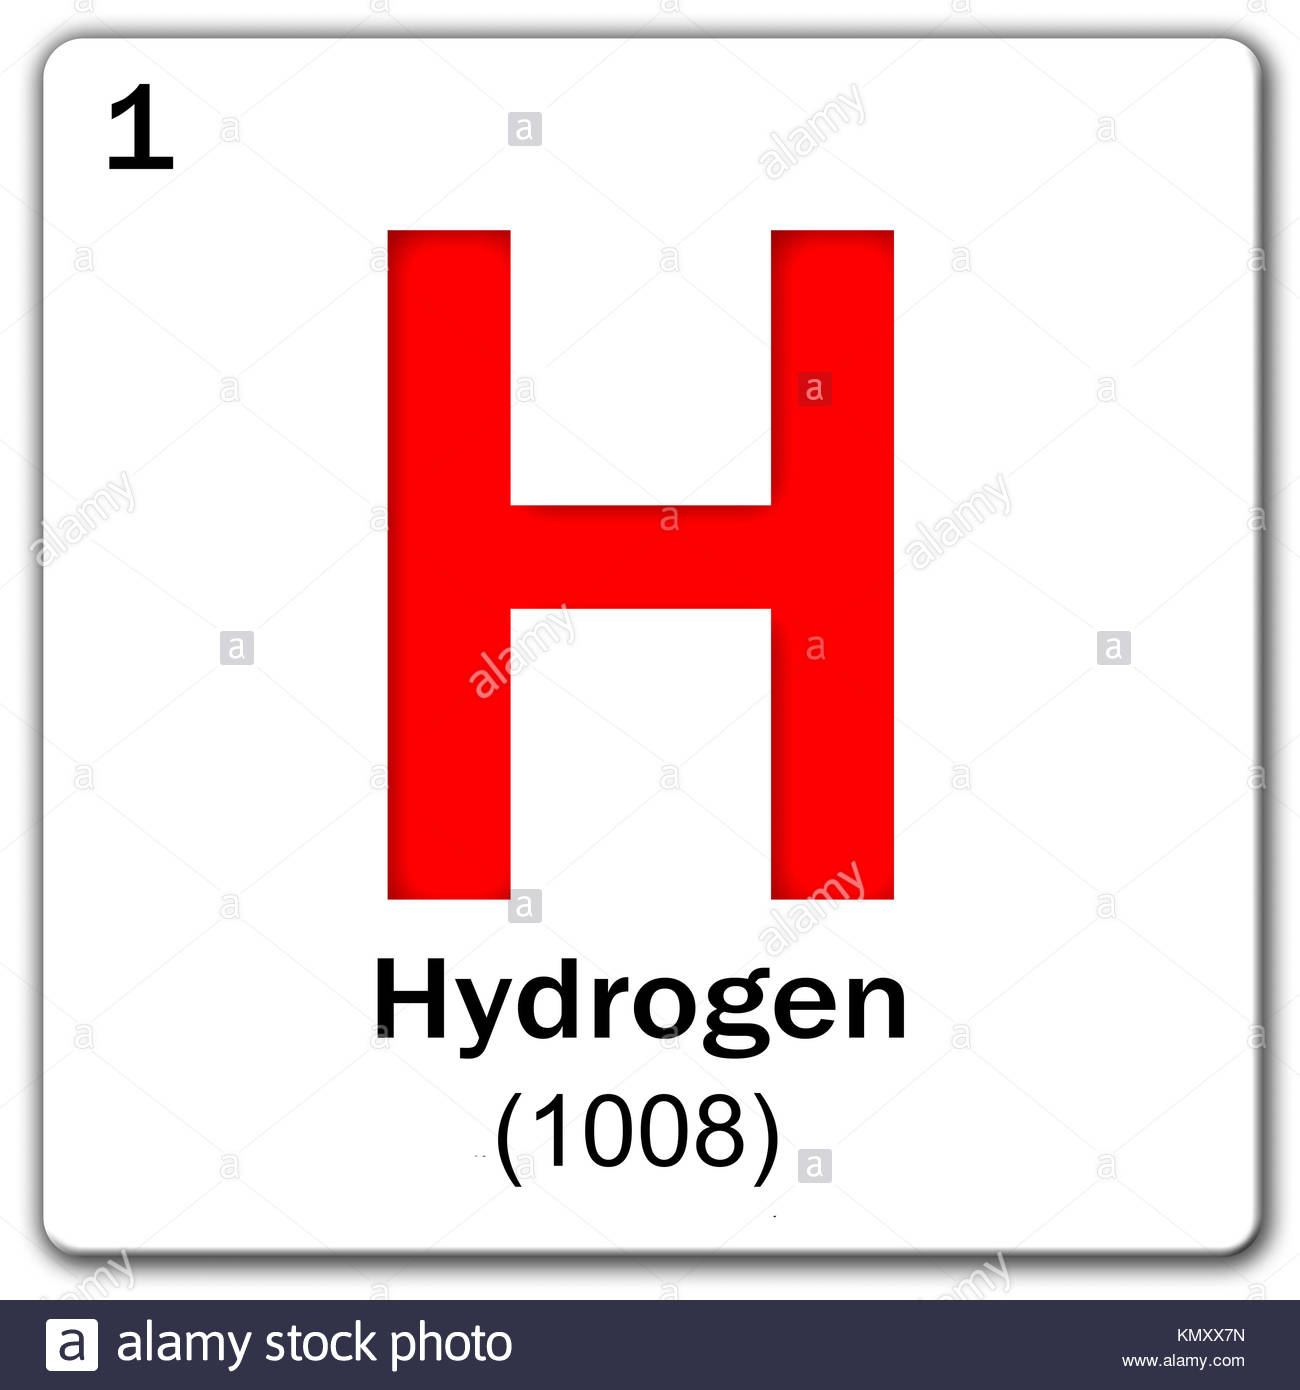 Periodic table hydrogen stock photos periodic table hydrogen digital illustration chemical element hydrogen stock image gamestrikefo Images